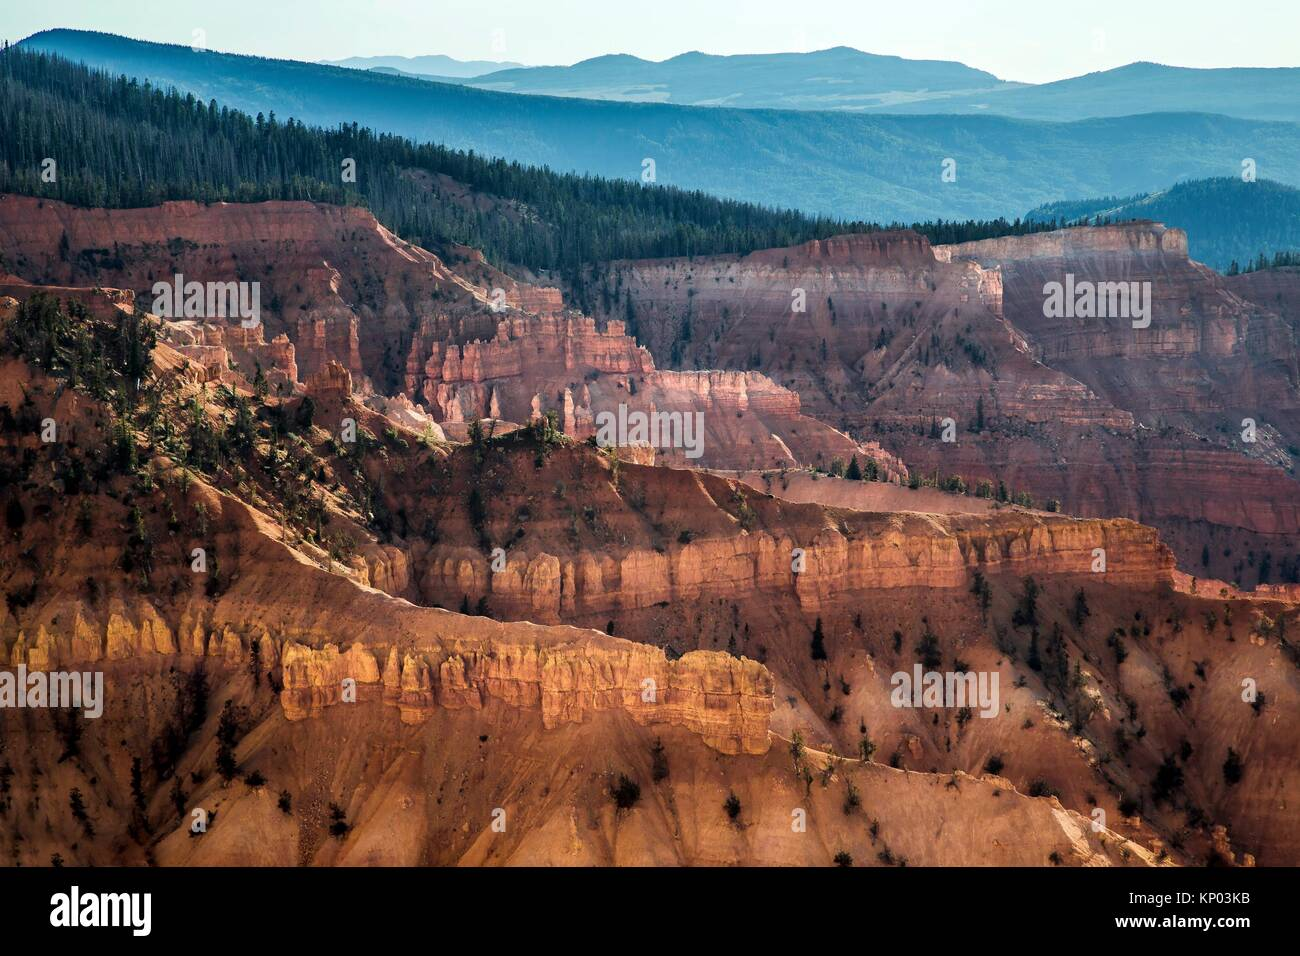 Erosion and time have shaped the sandstone landscape at Cedar Breaks National Monument in Southern Utah, USA. - Stock Image